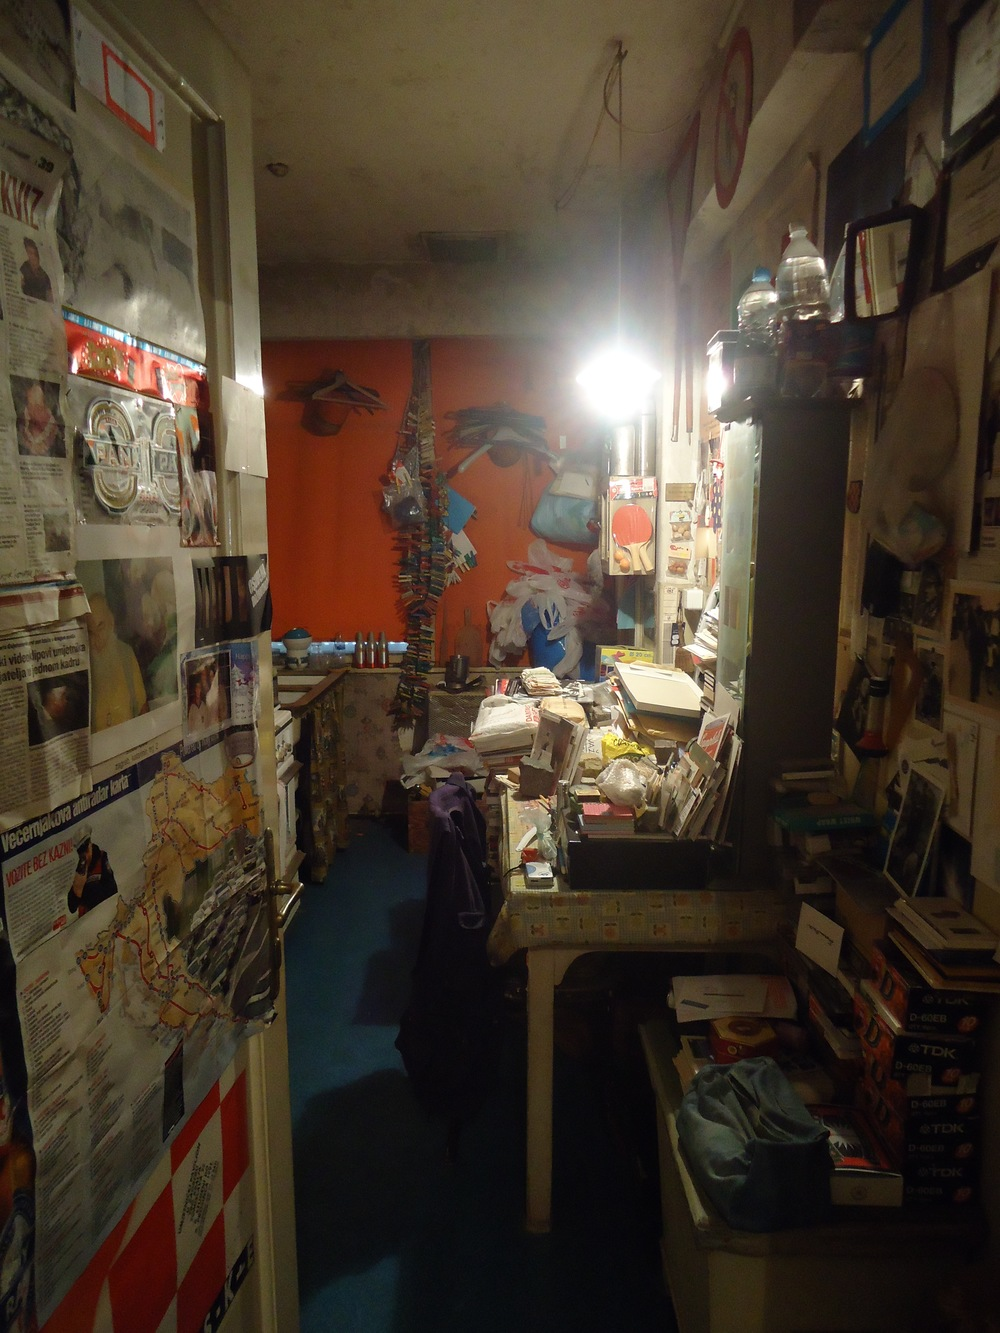 Gotovac's kitchen, left exactly as it was when he died...with all of the ephemera of daily life that he collected, and that surrounded him